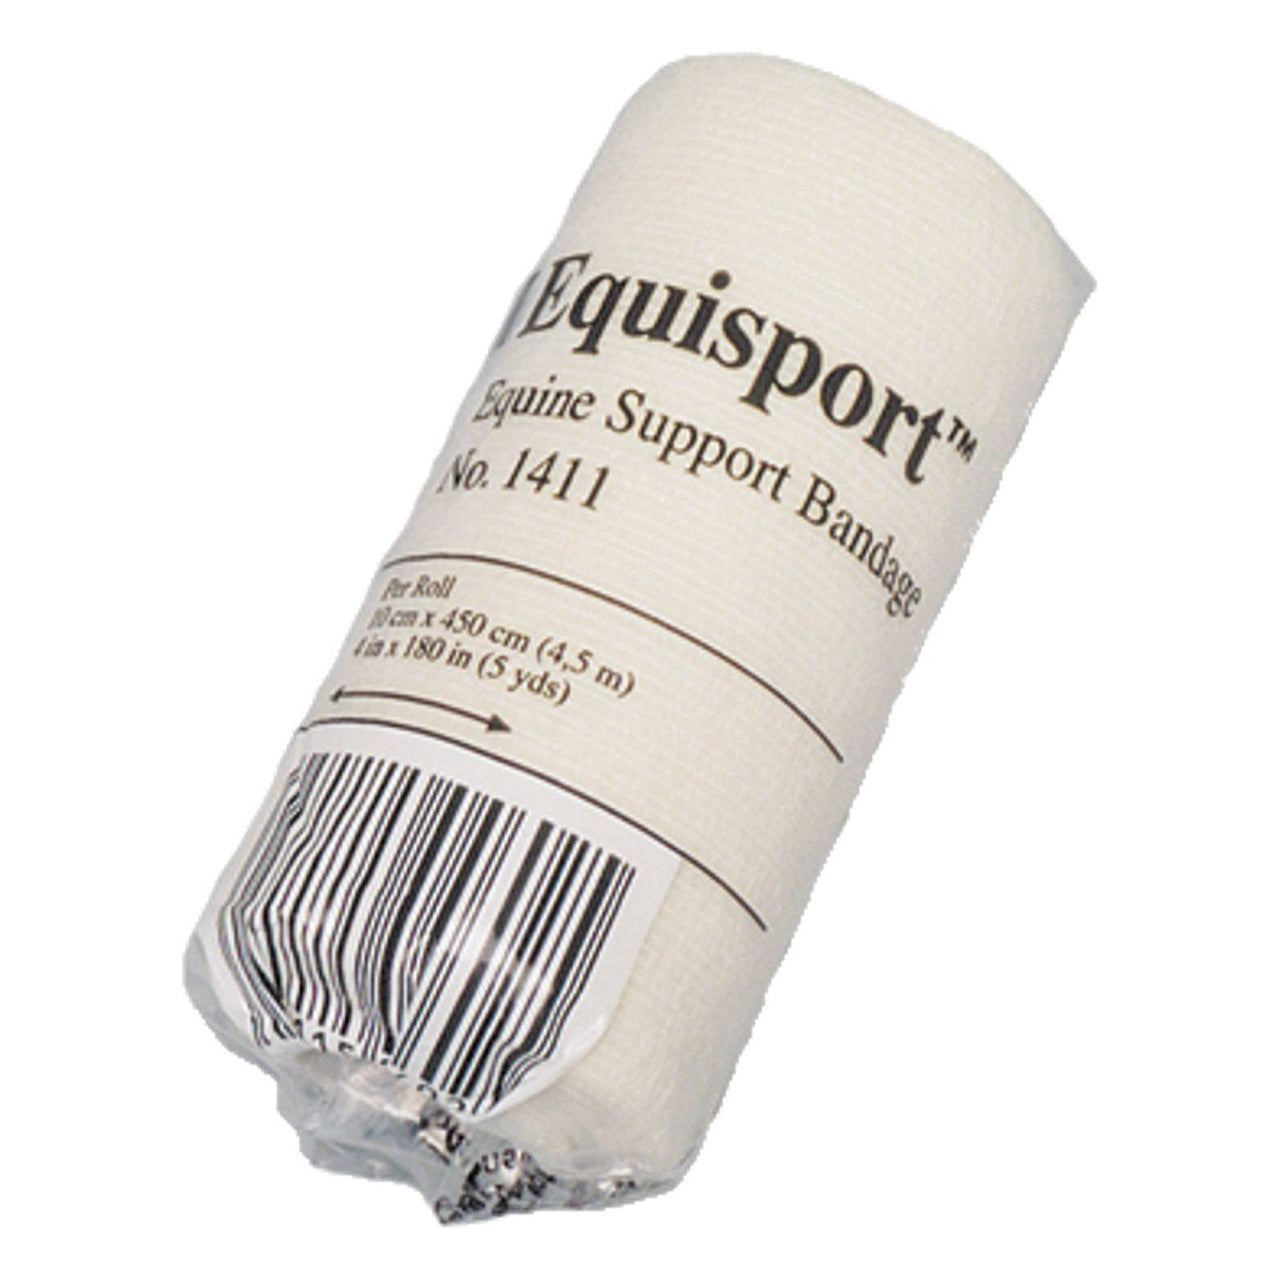 3M equisport equine support bandage (1411)